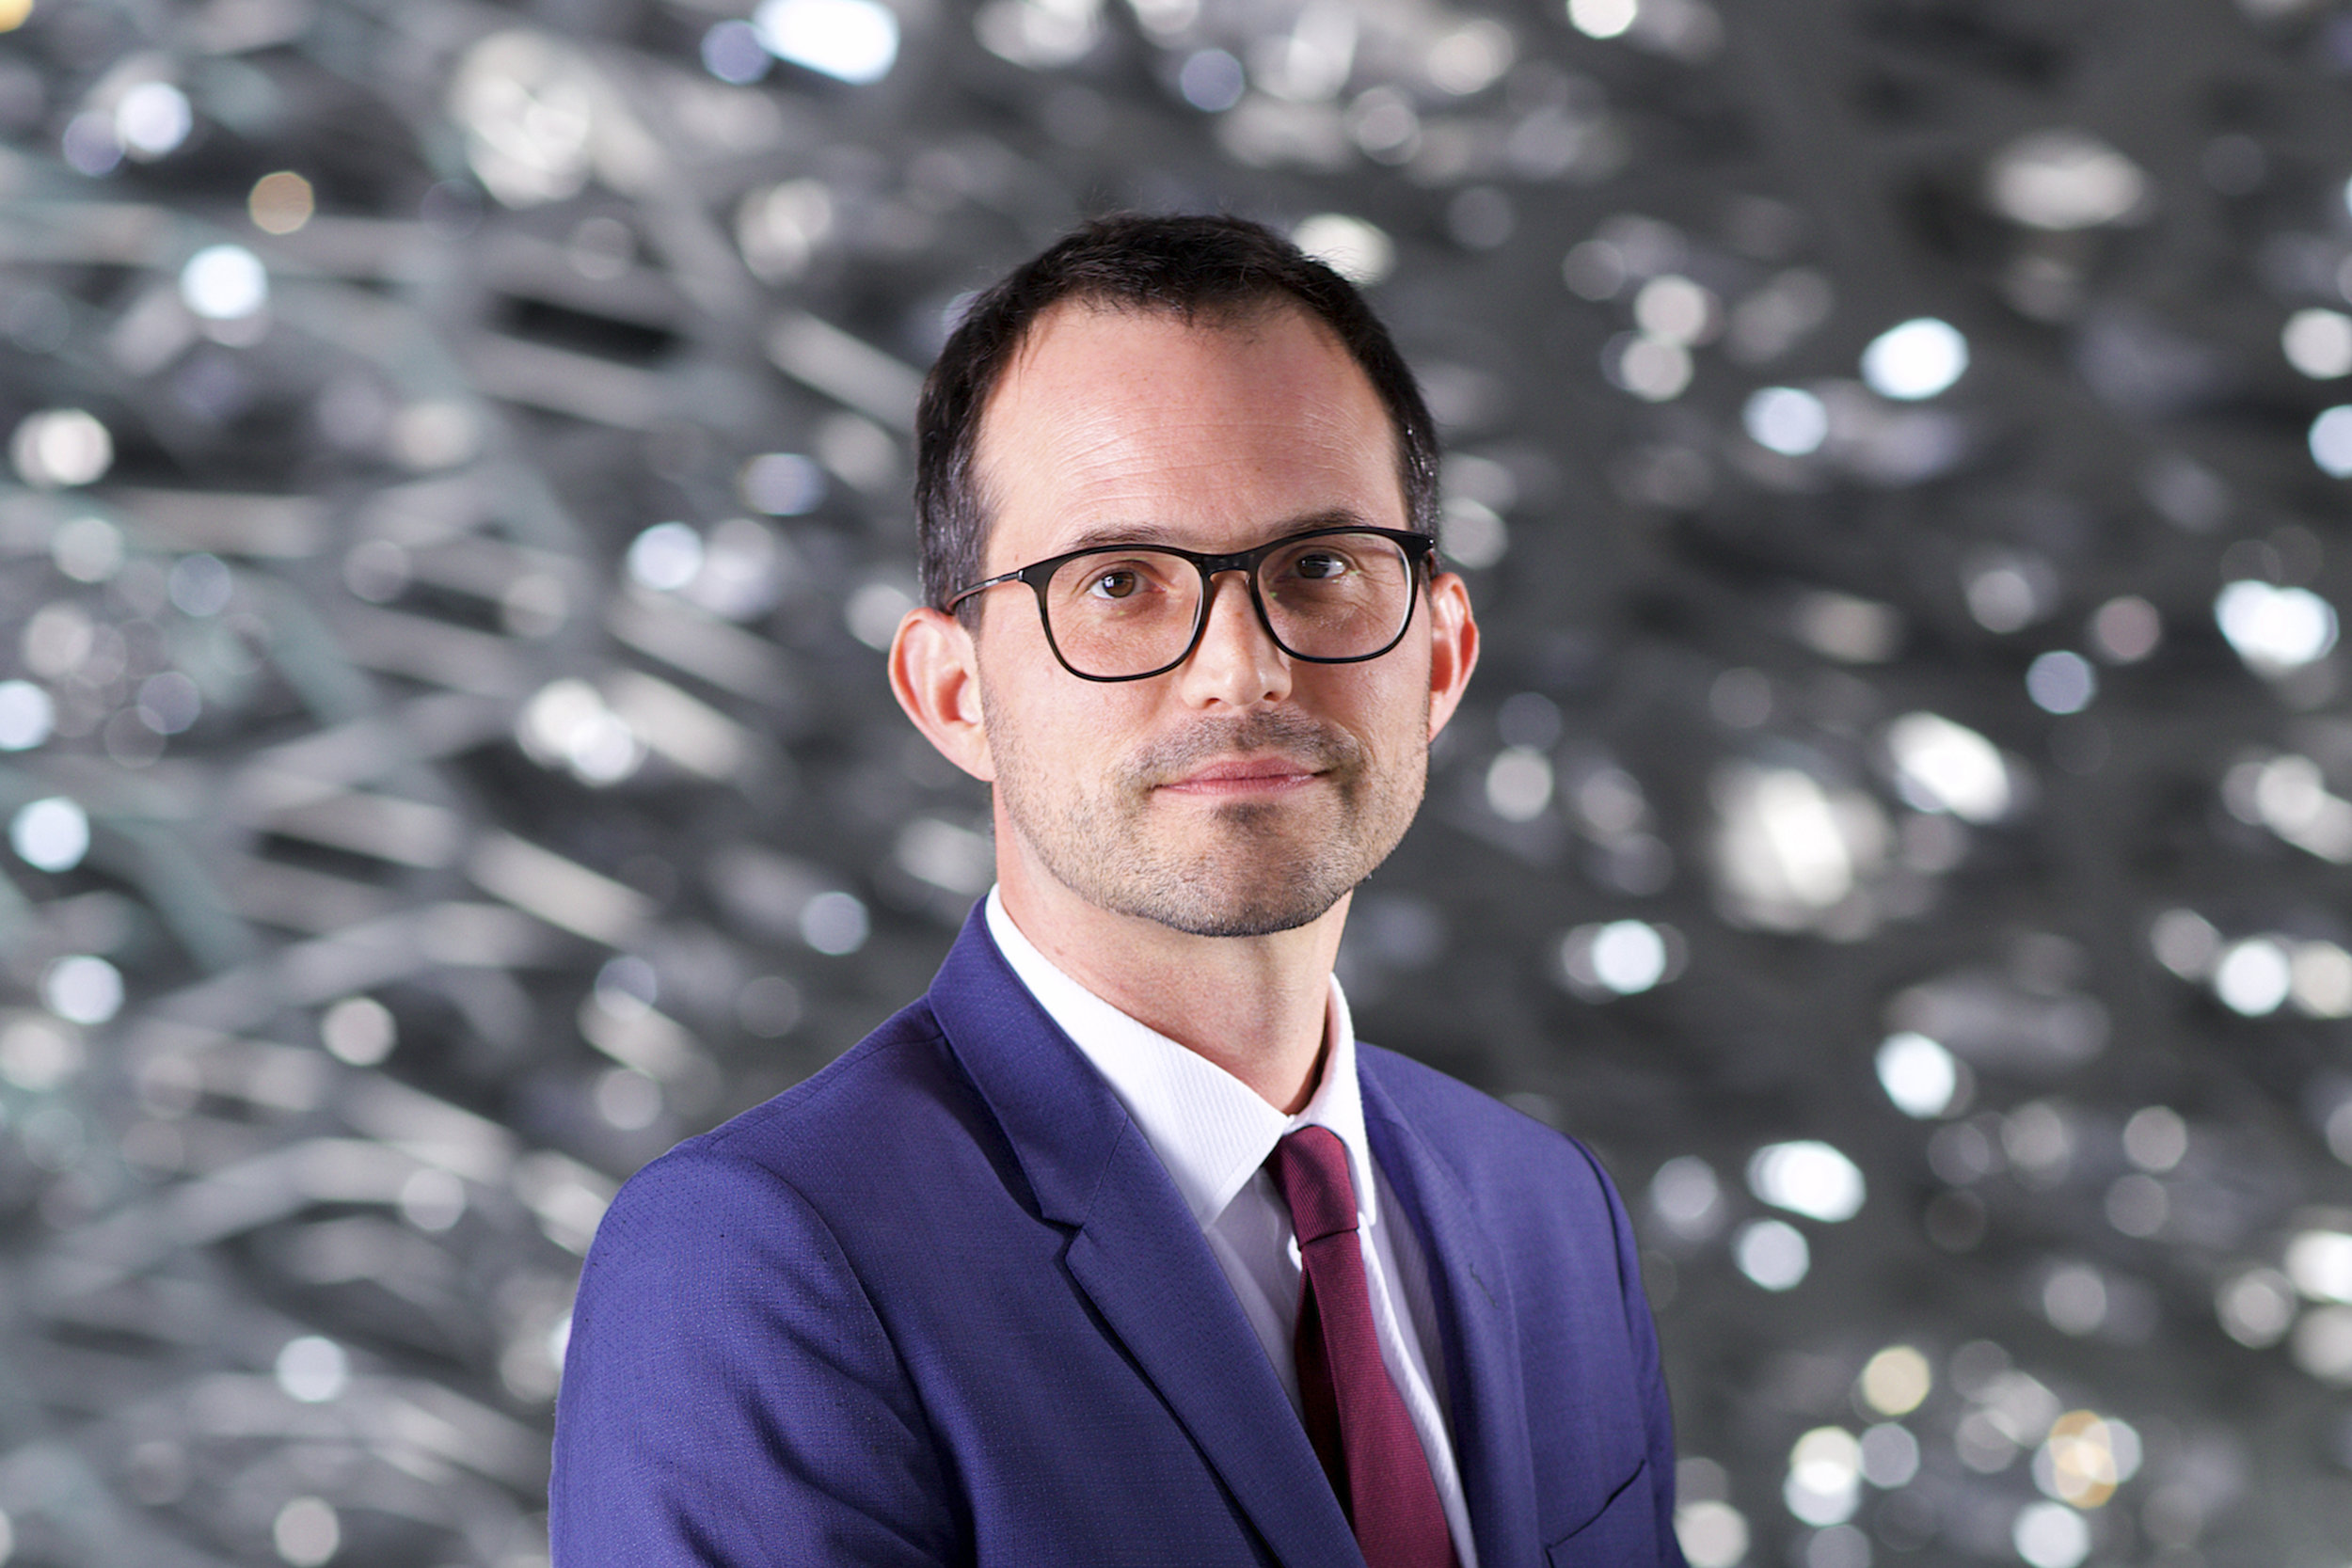 Director of Louvre Abu Dhabi